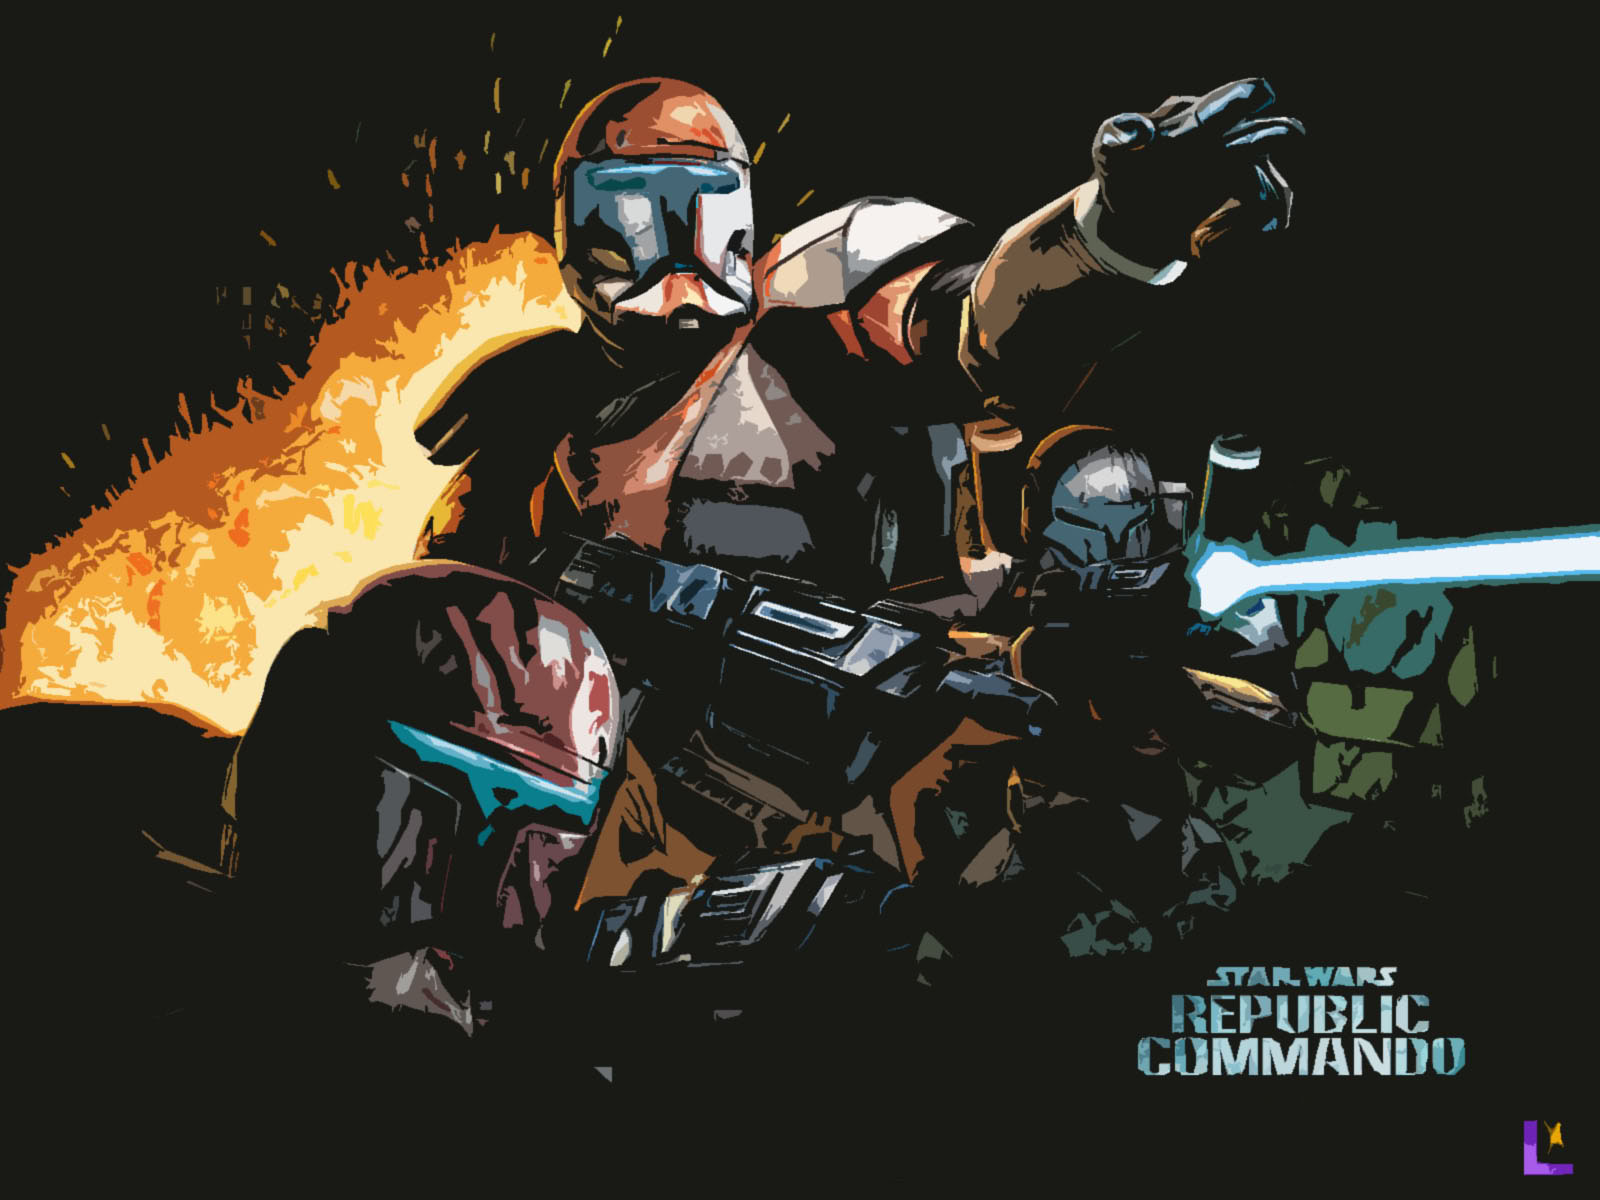 Free Download Clone Trooper 1 1600x1200 For Your Desktop Mobile